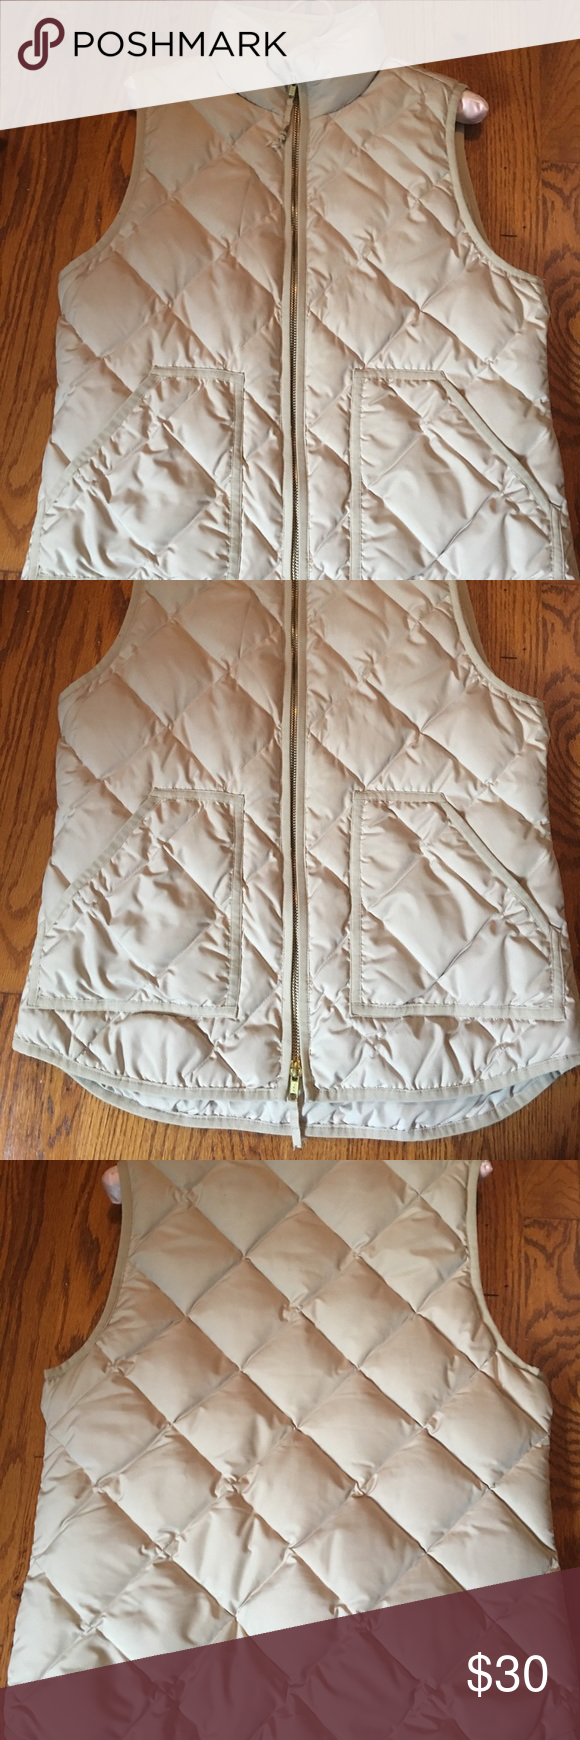 J.Crew Vest In good condition. Photos tell all what you see is what you get. Light cream color J. Crew Jackets & Coats Vests